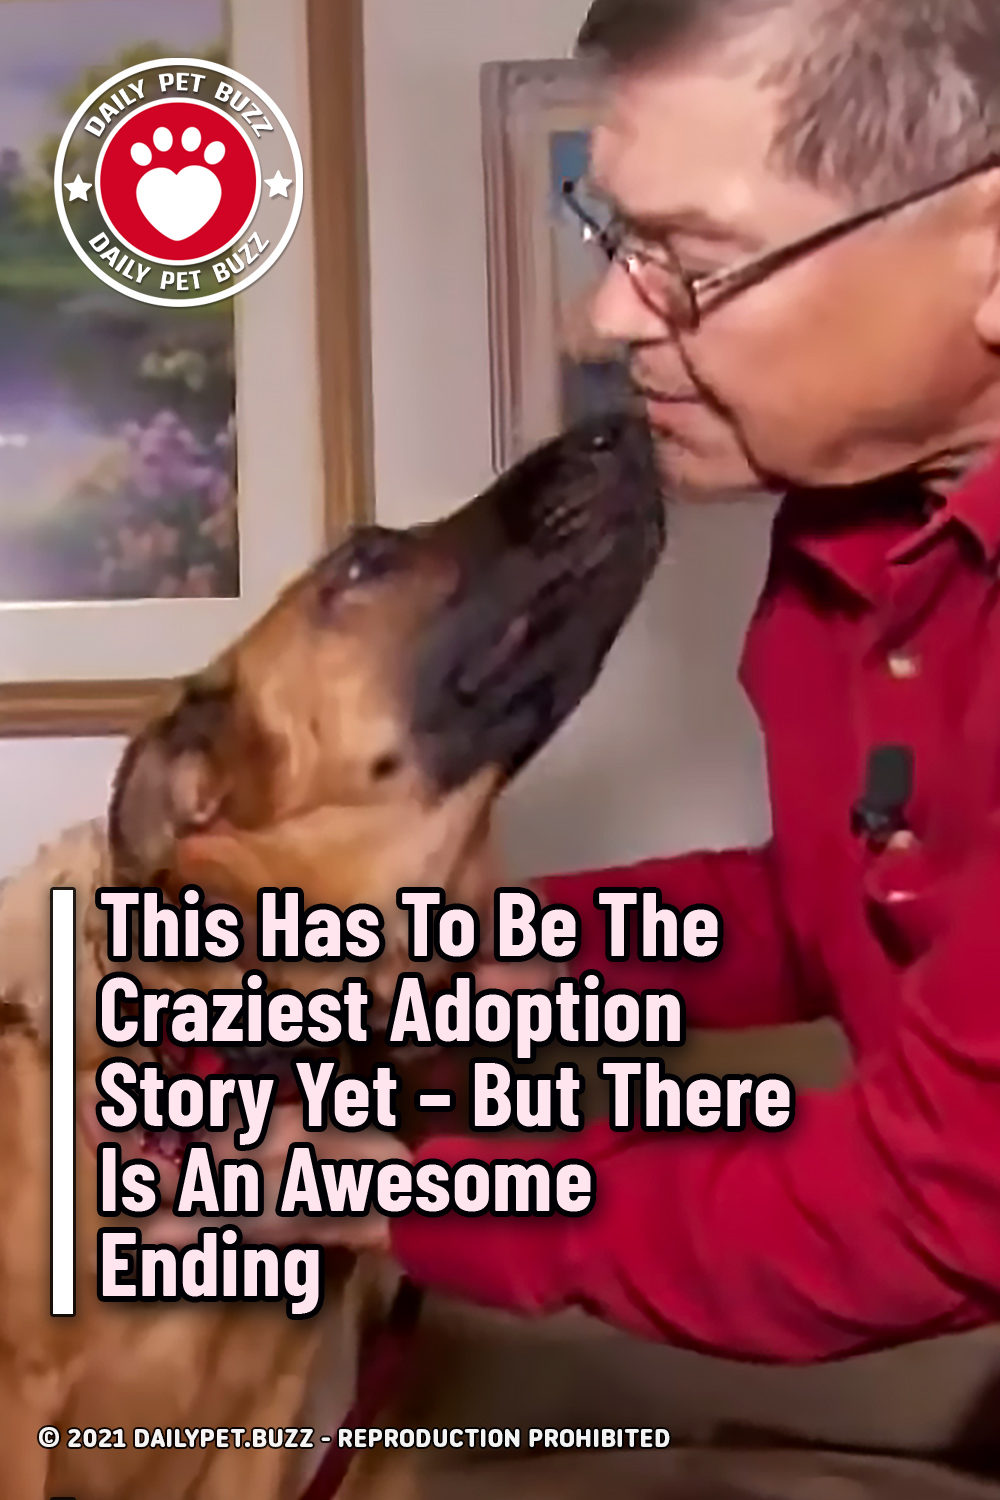 This Has To Be The Craziest Adoption Story Yet – But There Is An Awesome Ending